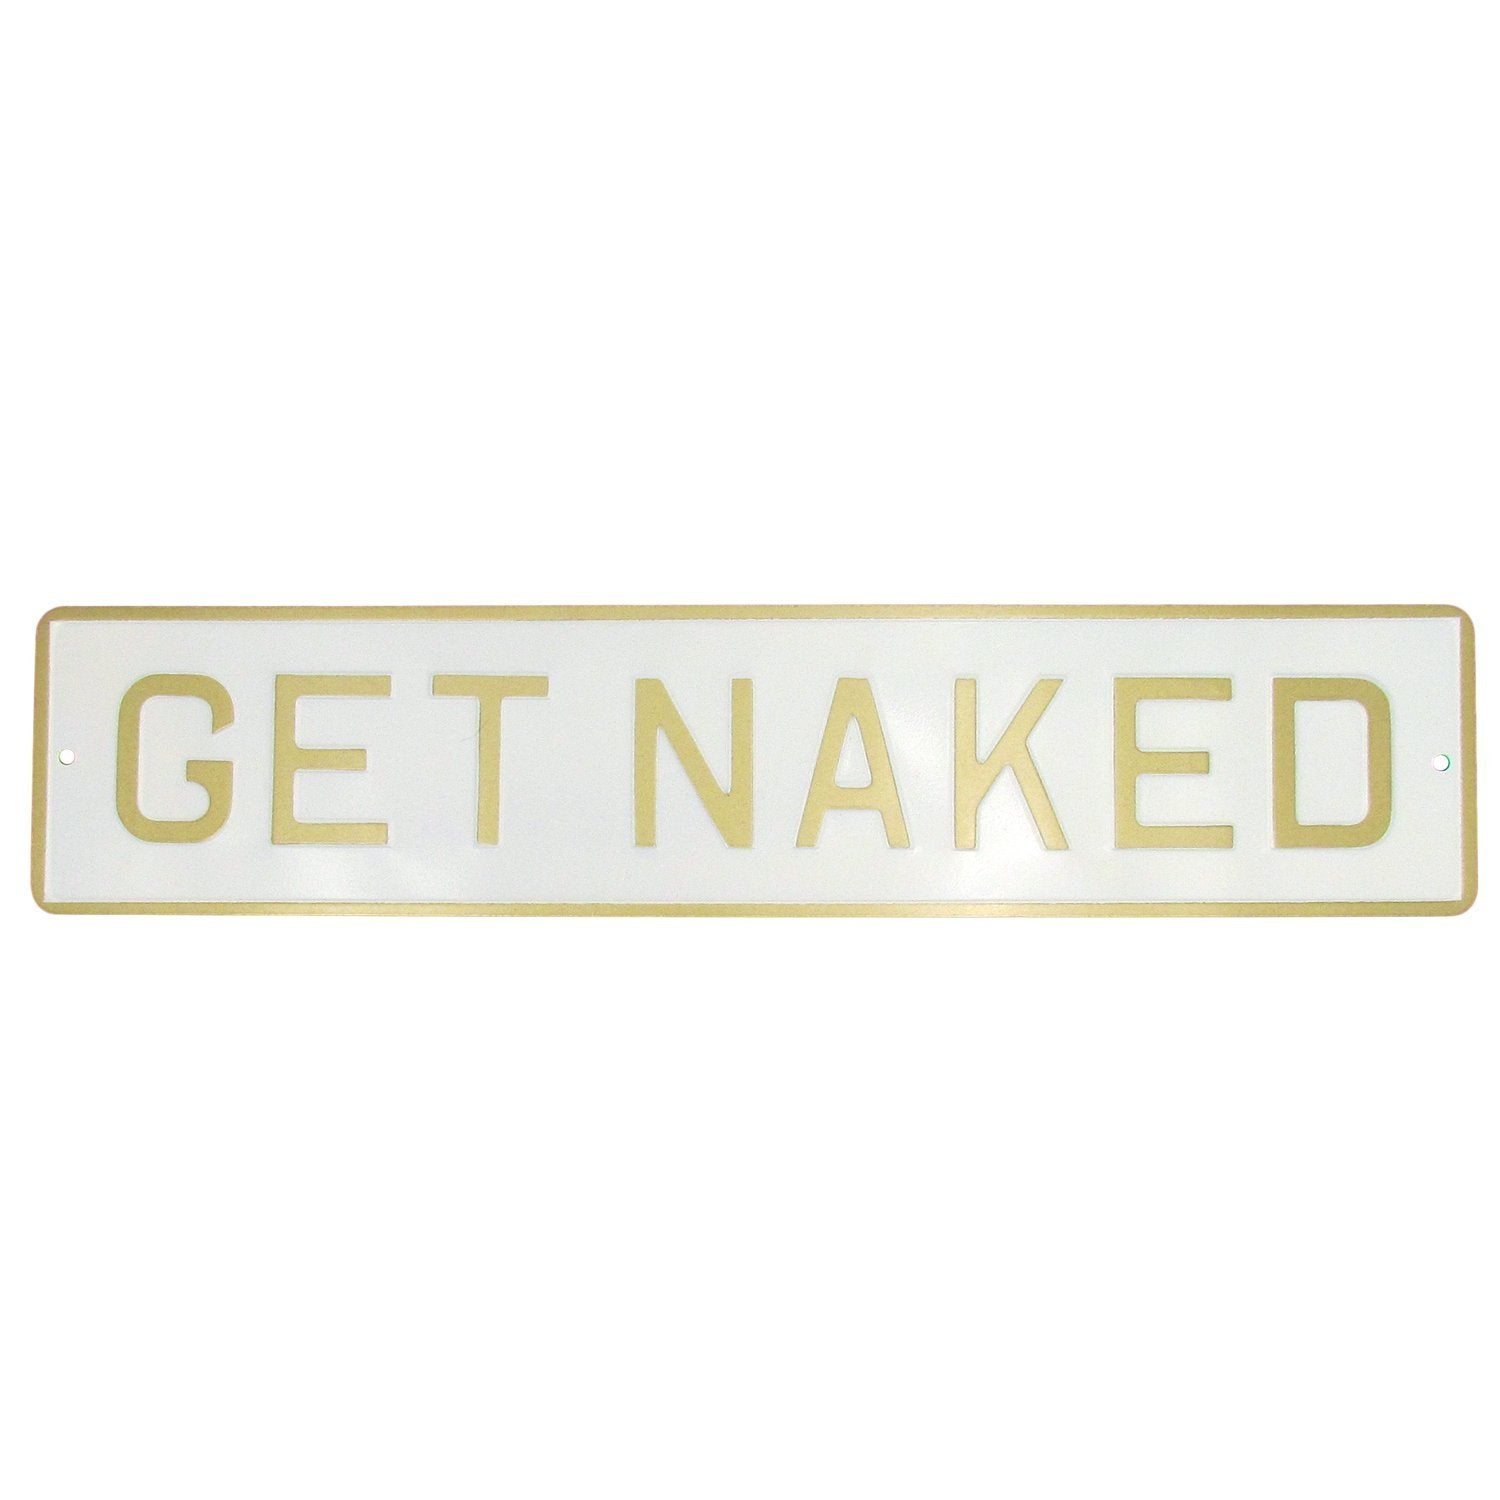 Get Naked Enamel Metal Sign Black and Silver - Made in Britain - BRIT LOCKER